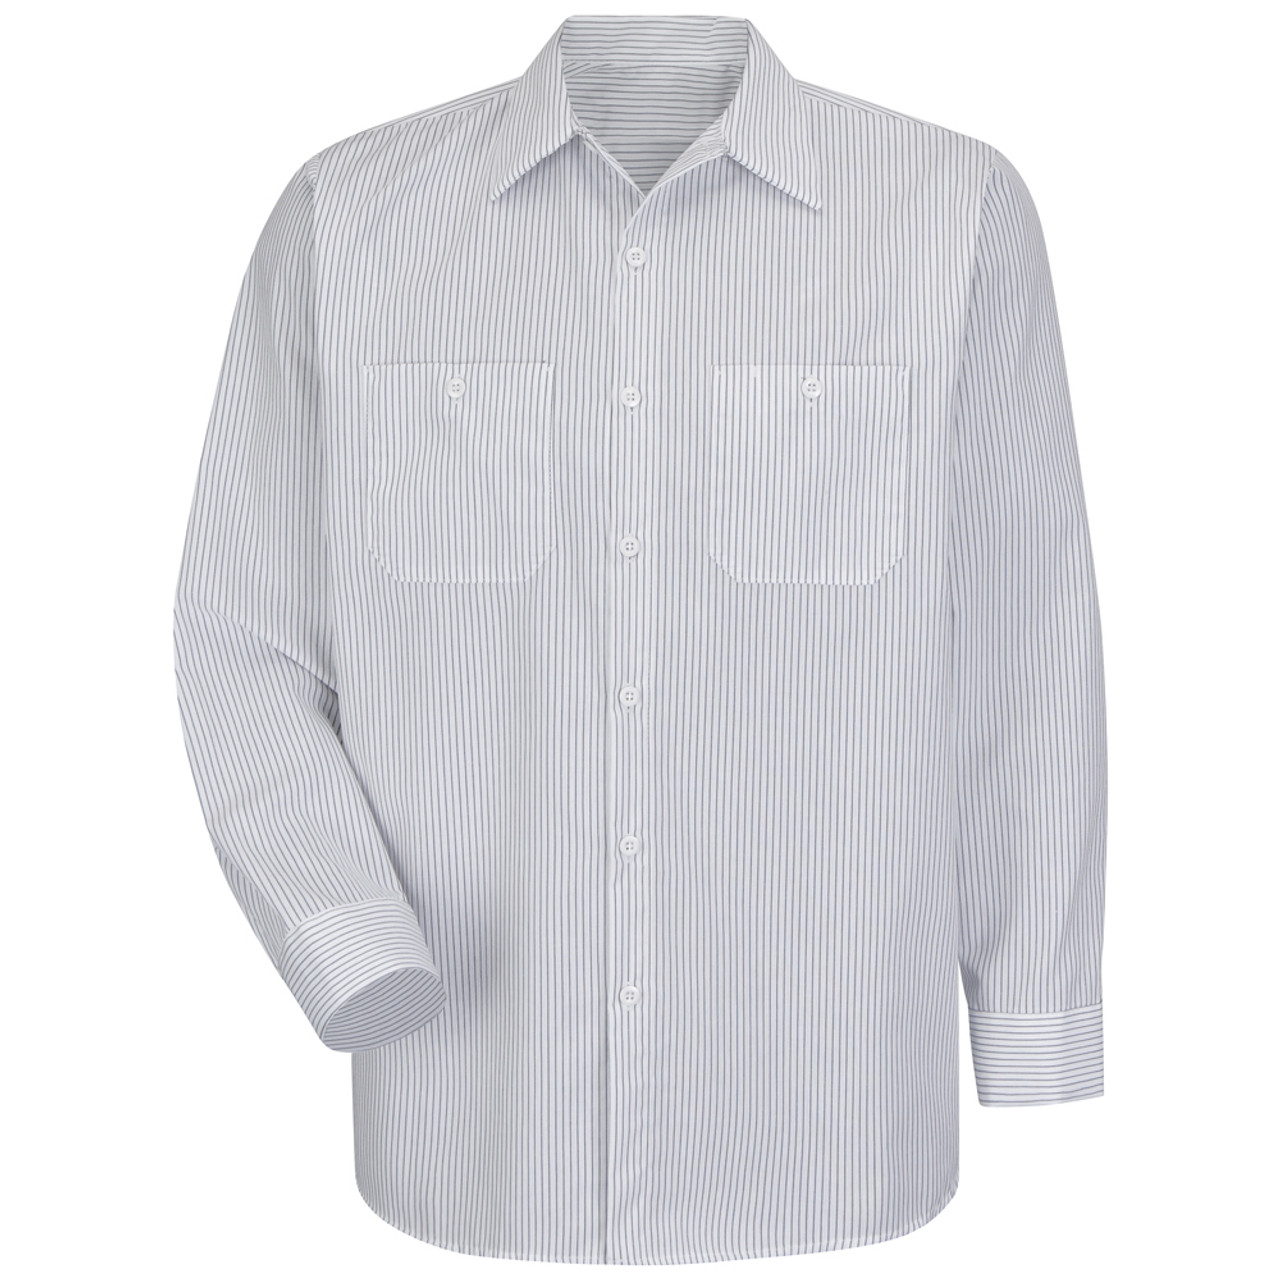 f8fba4826 Red Kap Men's Long Sleeve Striped Industrial Work Shirt - Red Kap white and  charcoal stripe